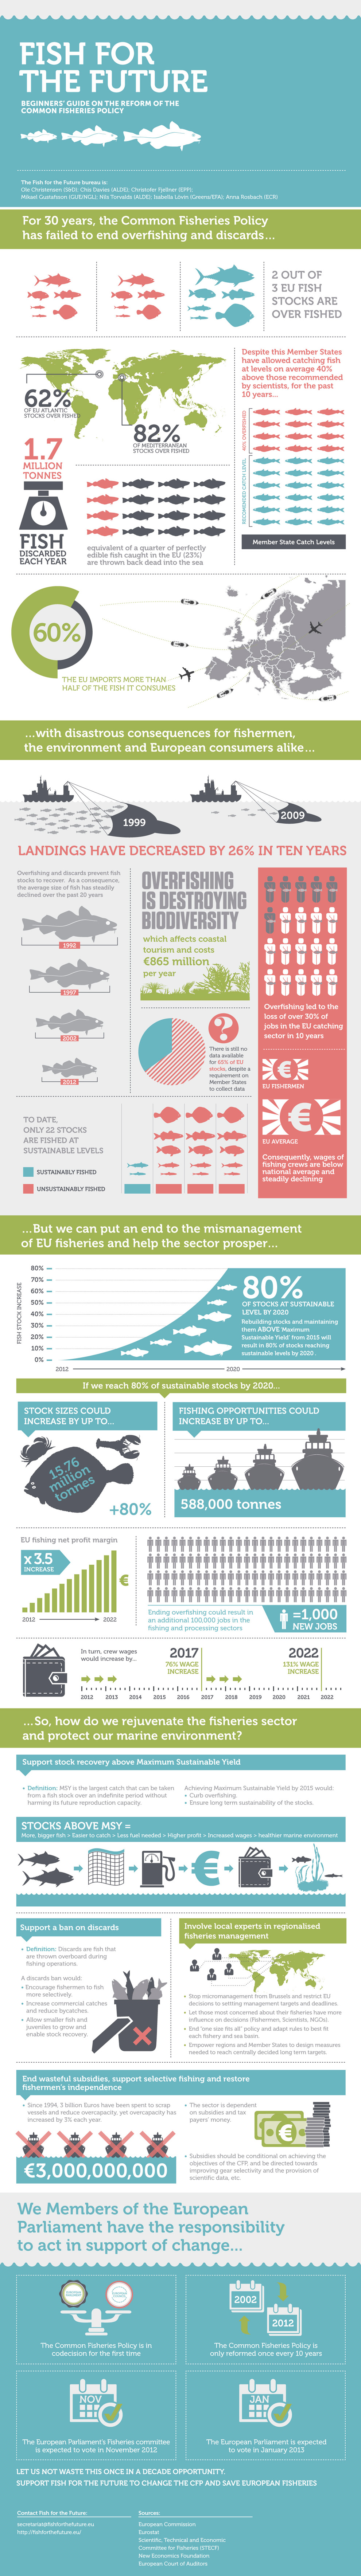 Beginners' Guide to the Common Fisheries Policy – Fish For the Future